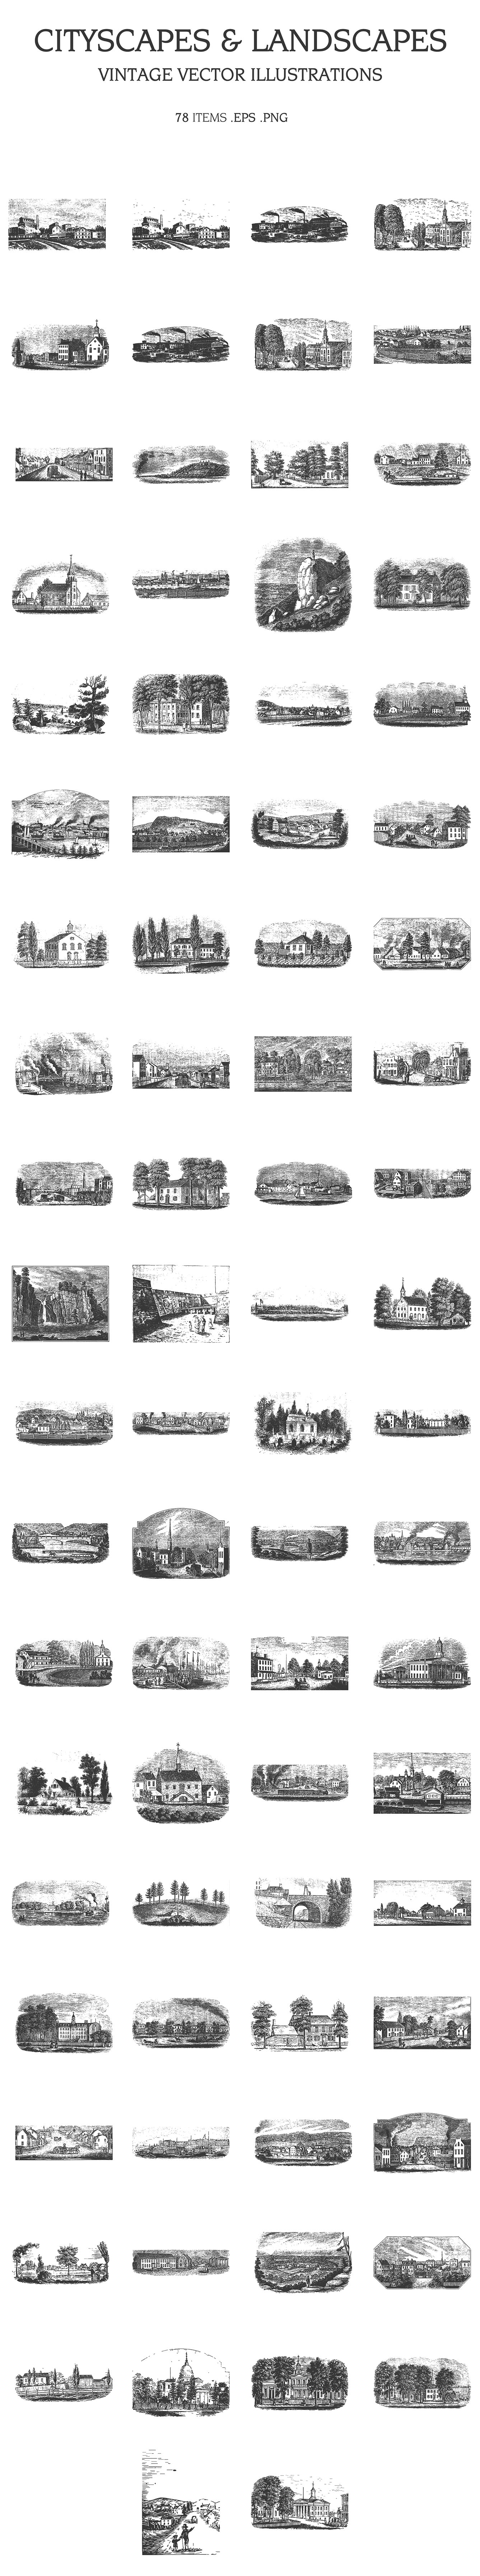 Vintage Vector Illustrations Bundle [Multiple Categories, 1391 Items] - cityscapes